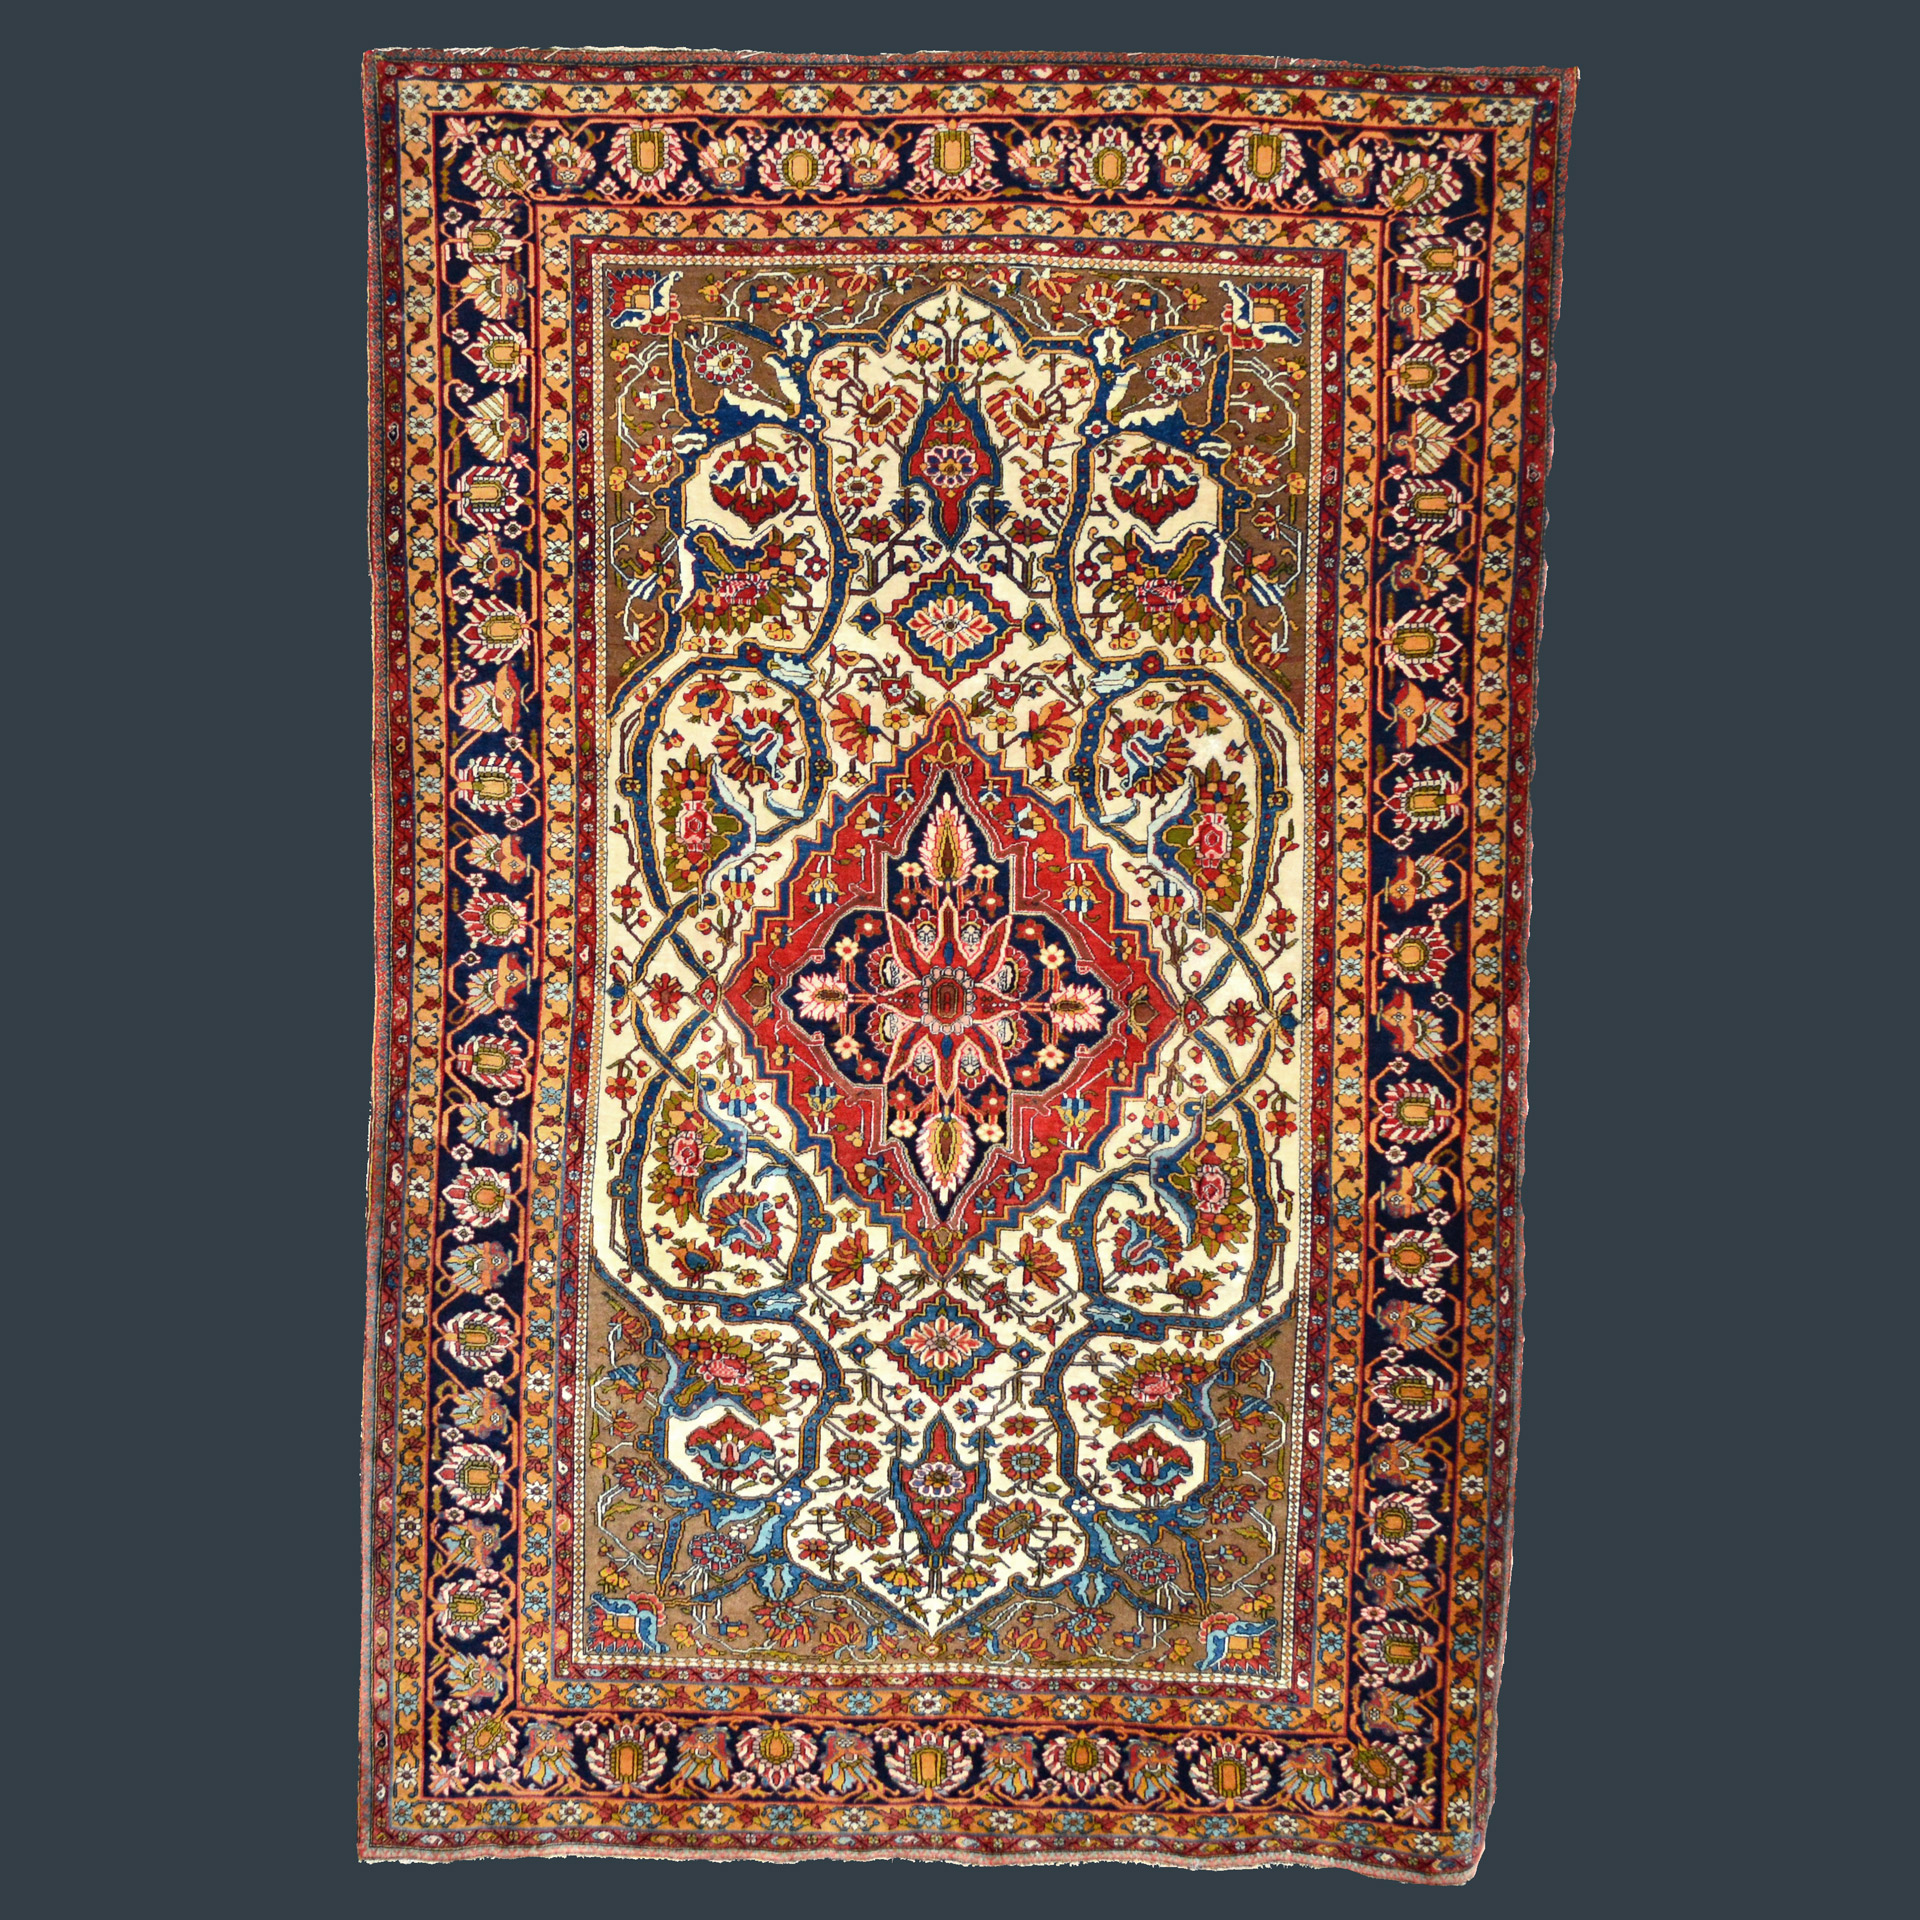 Antique Persian Mohtasham Kashan rug with an ivory field and navy blue border, circa 1890